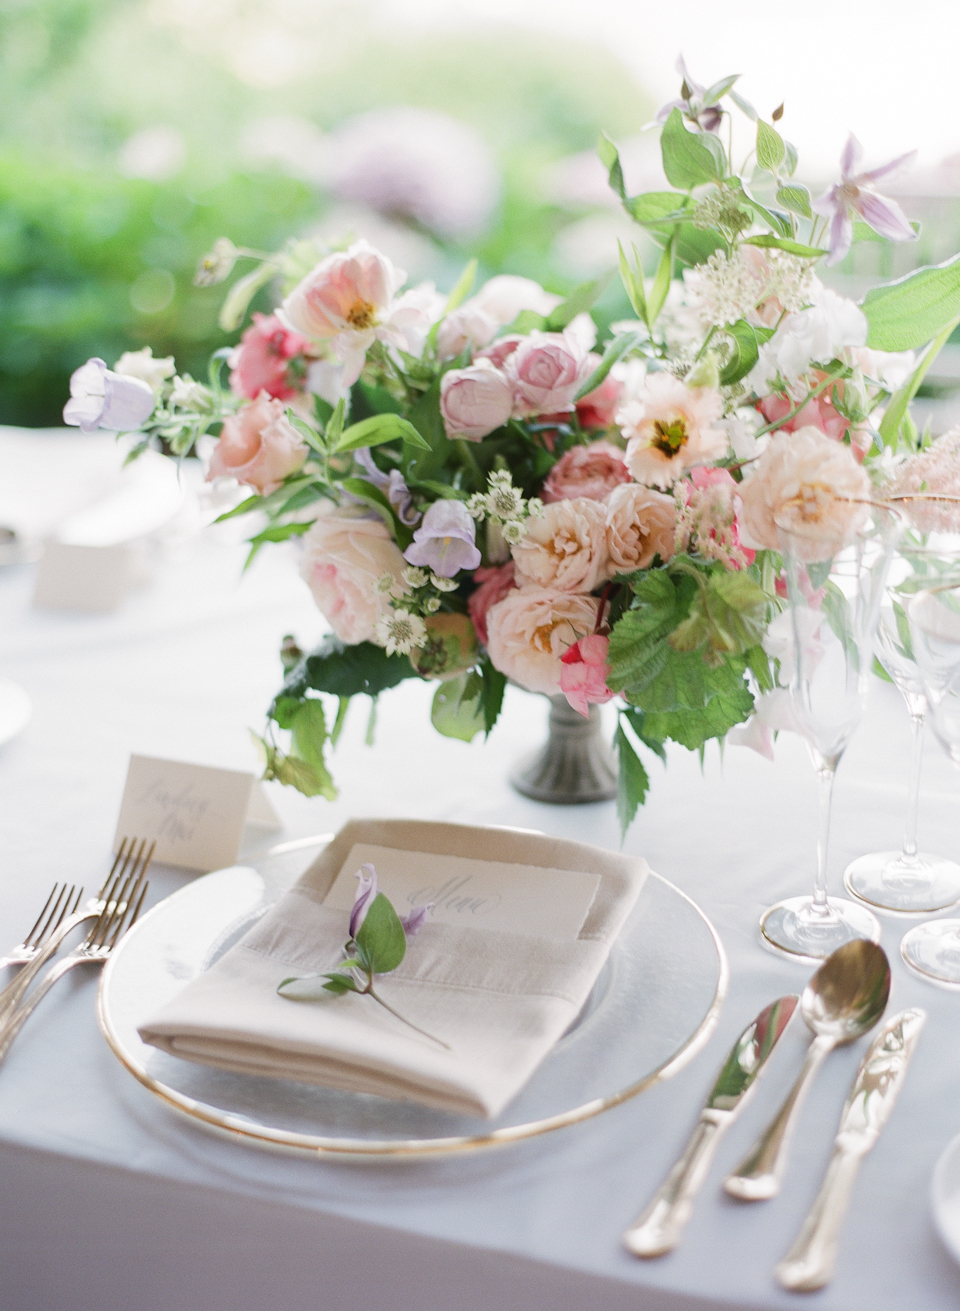 adrienne cameron wedding reception place setting with pink flowers